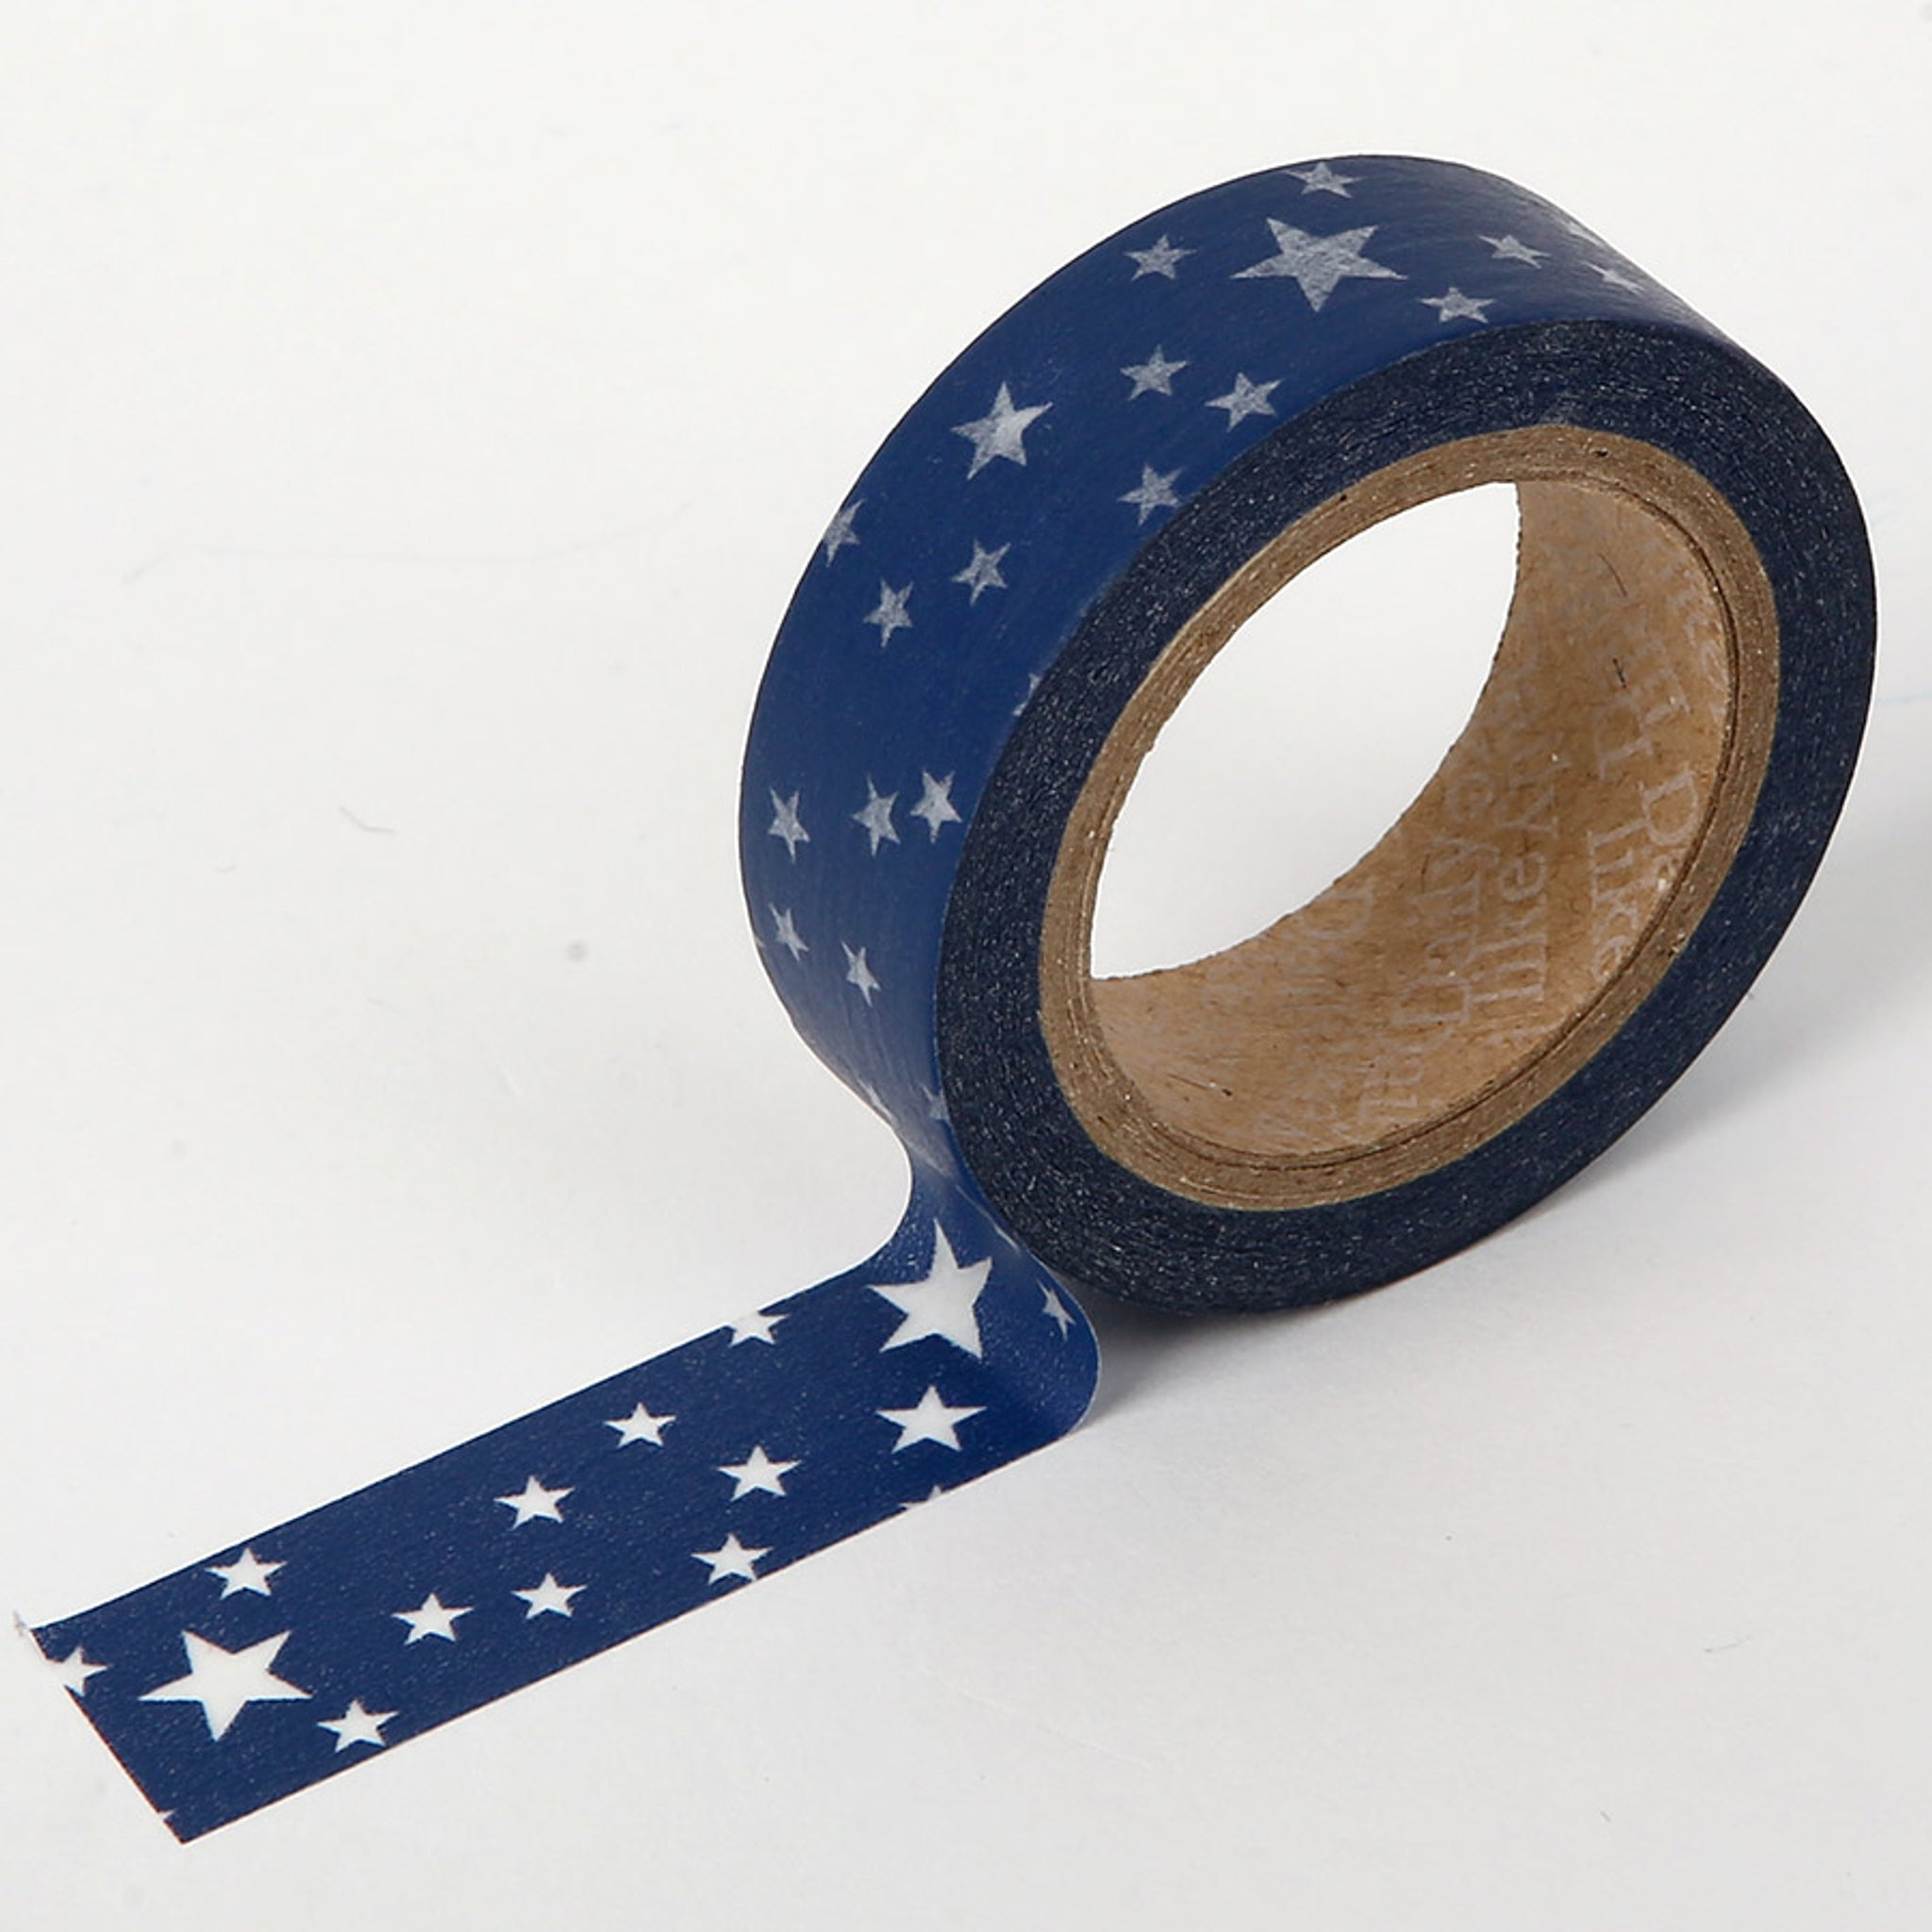 DailyLike Starry washi tape